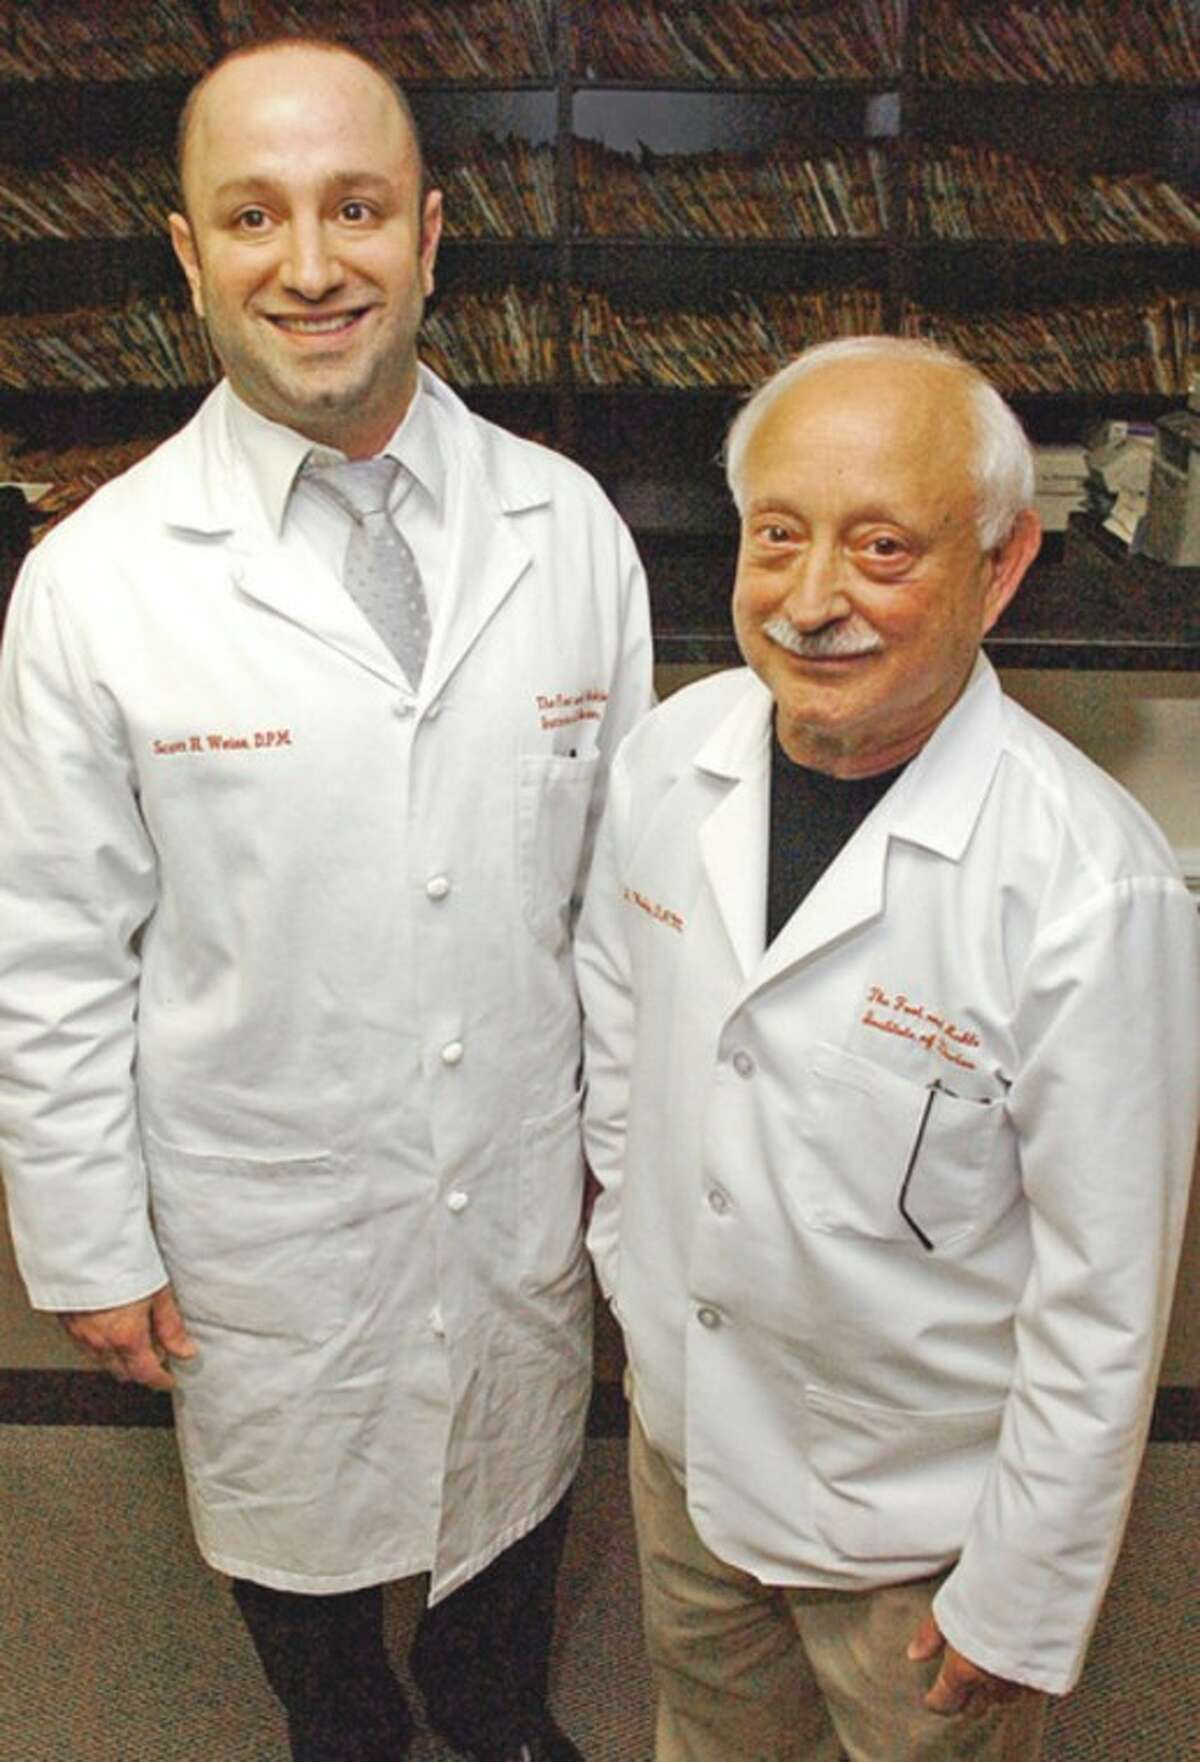 Doctors Scott and Bob Weiss of the Foot & Ankle Institute of Darien, LLC. Hour photo / Erik Trautmann